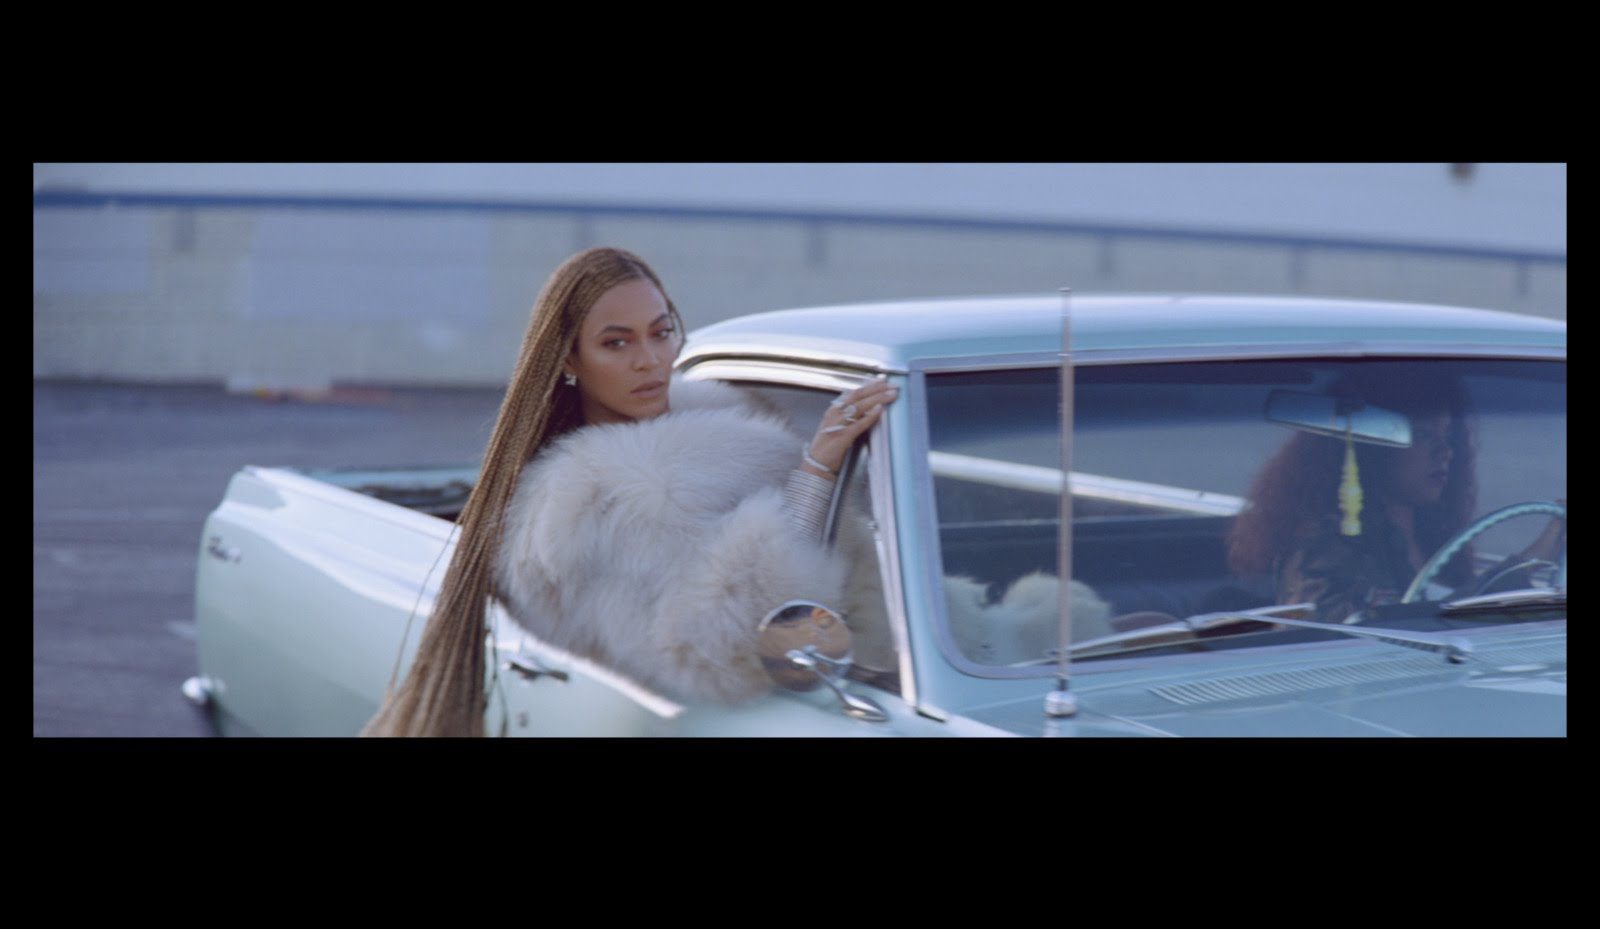 Beyoncé - Formation (Official Video) - MoroccanHipHop.com